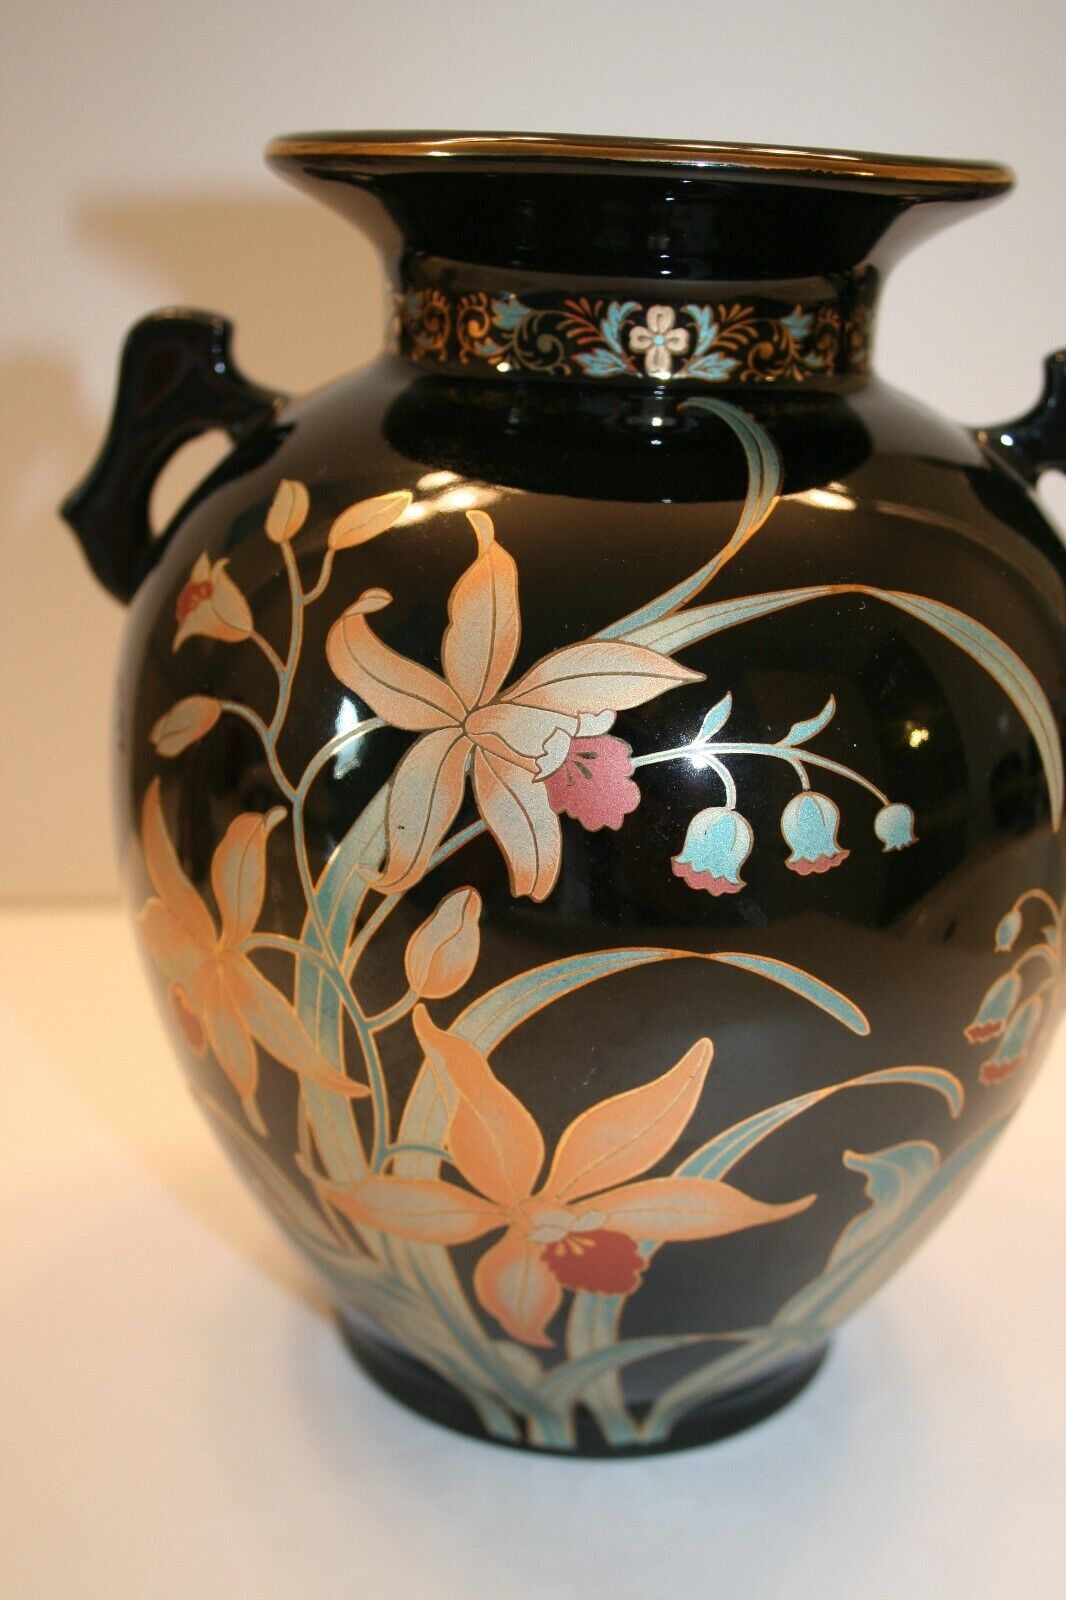 Large Vintage Black Japanese Vase With Painted Orchids 8 Inches Tall - $37.00